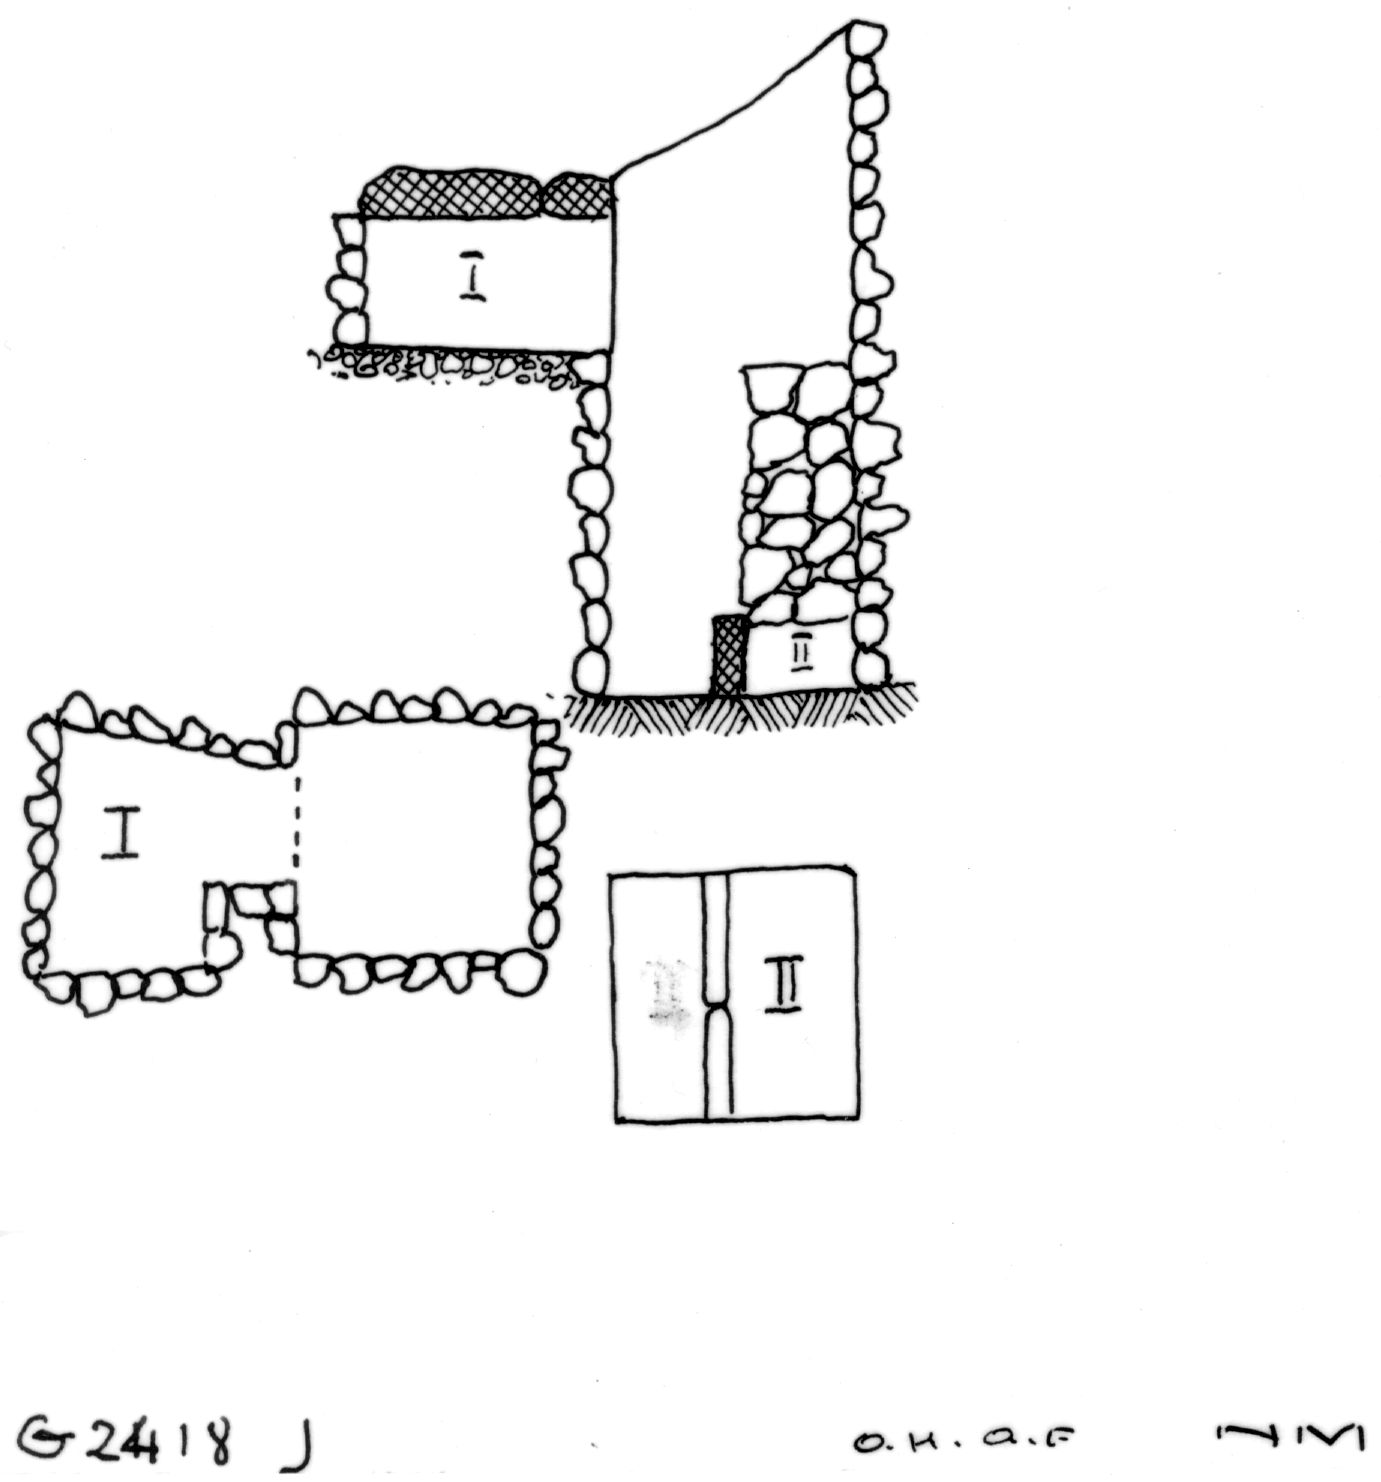 Maps and plans: G 2418, Shaft J